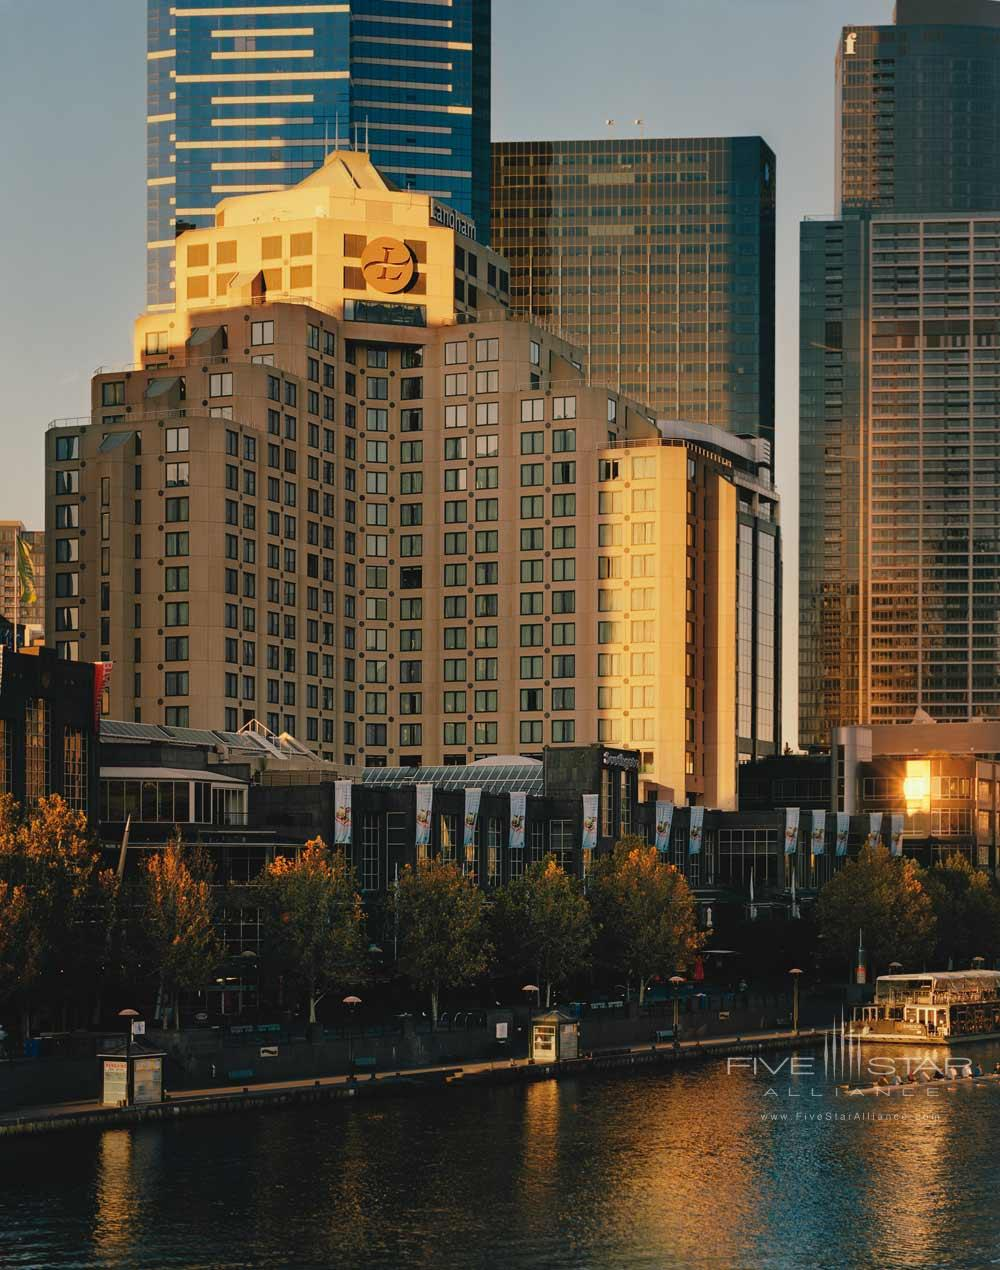 Exterior Of The Langham Hotel Melbourne From The Nearby River.